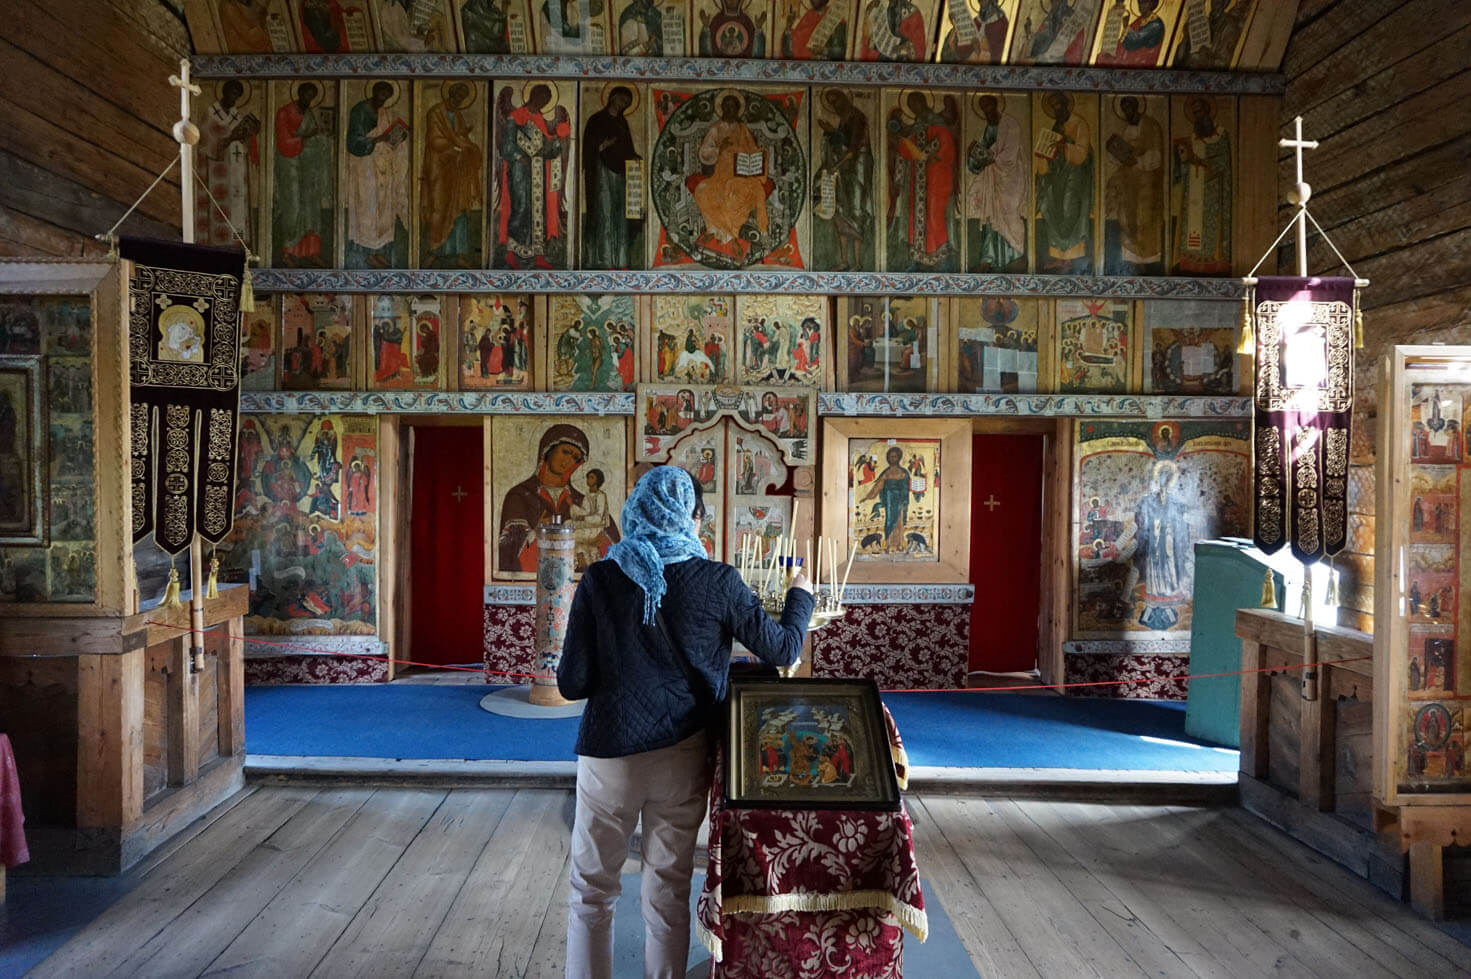 Inside the Church of the Intercession